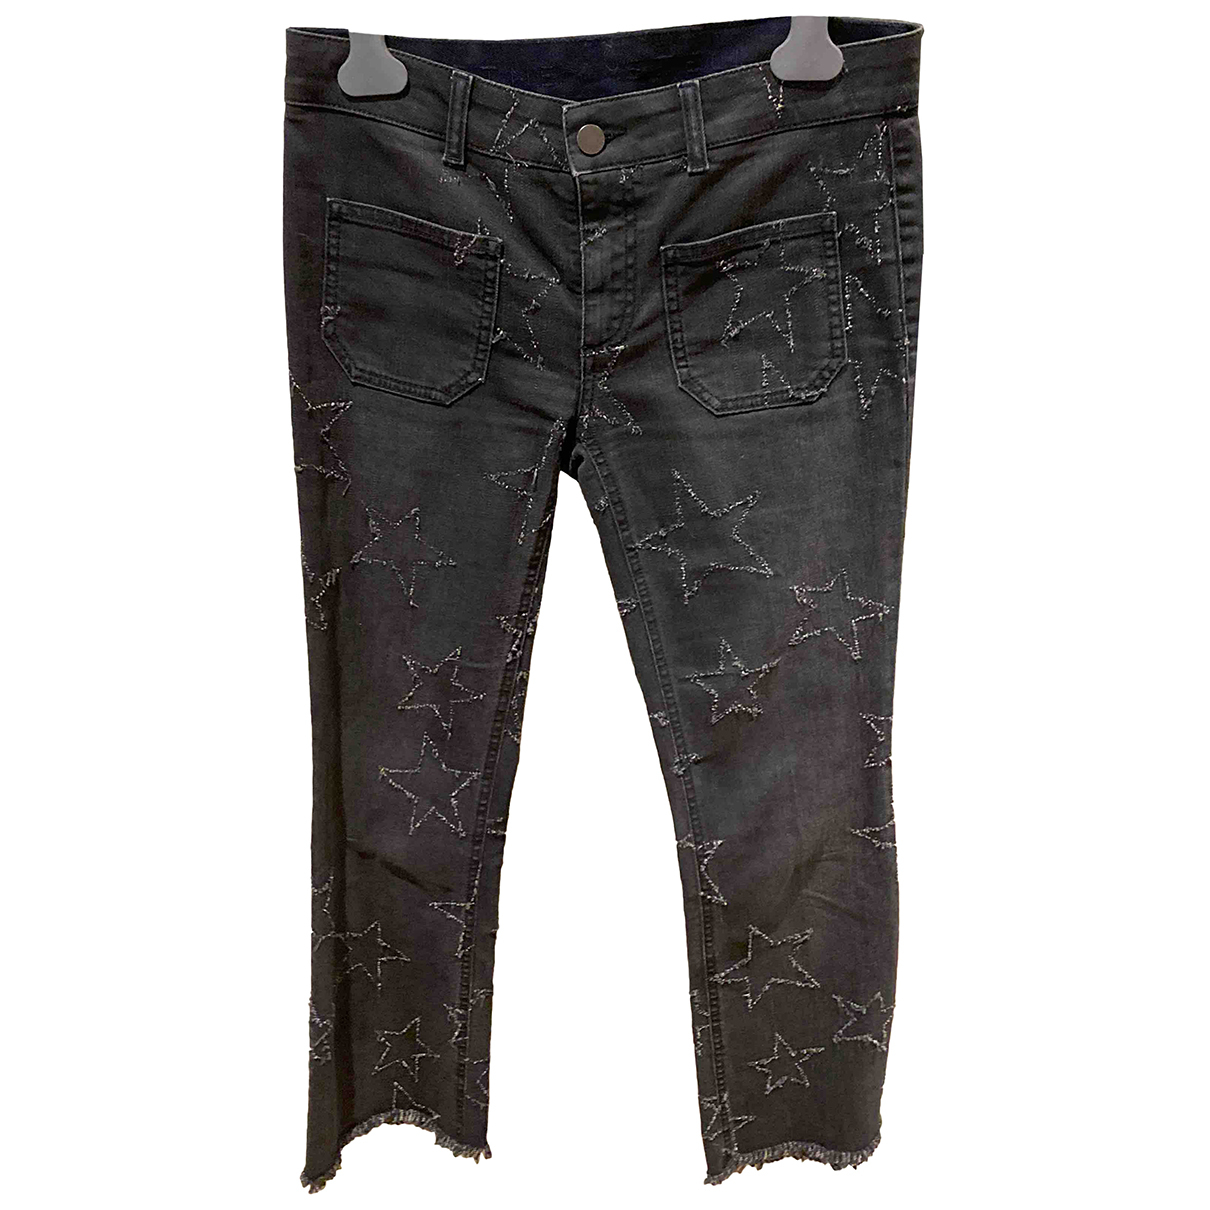 Stella Mccartney \N Grey Denim - Jeans Jeans for Women 26 US